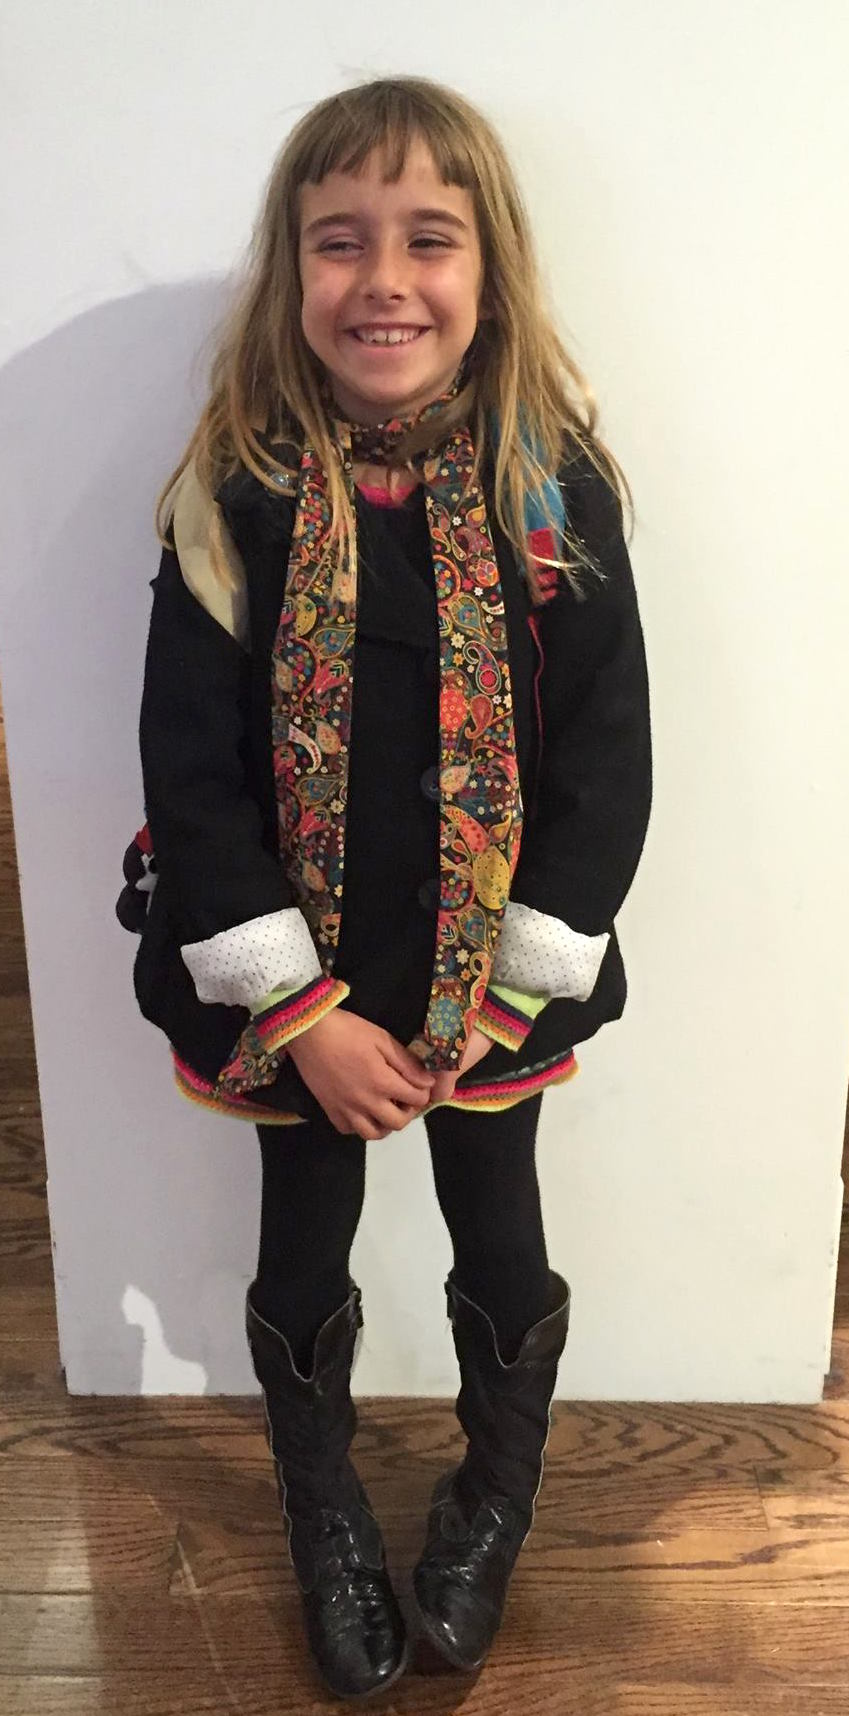 My stylish niece & her fab liberty scarf.